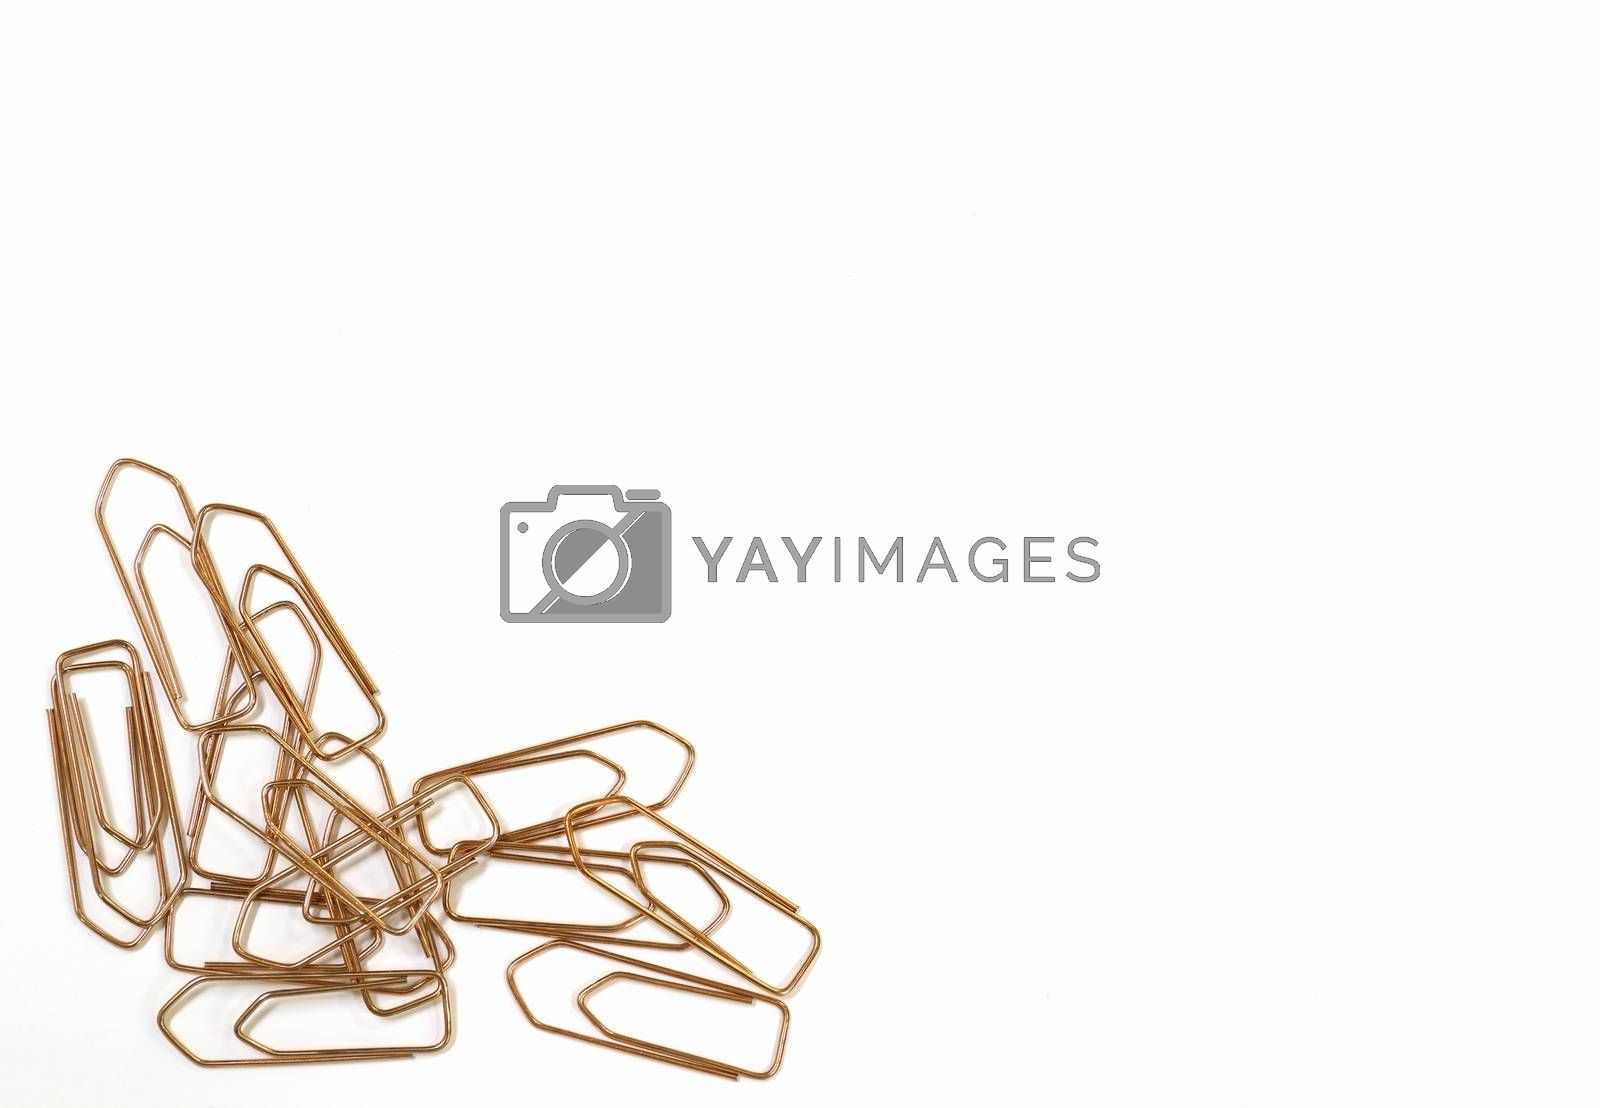 Close-up of paper clips on a white background.